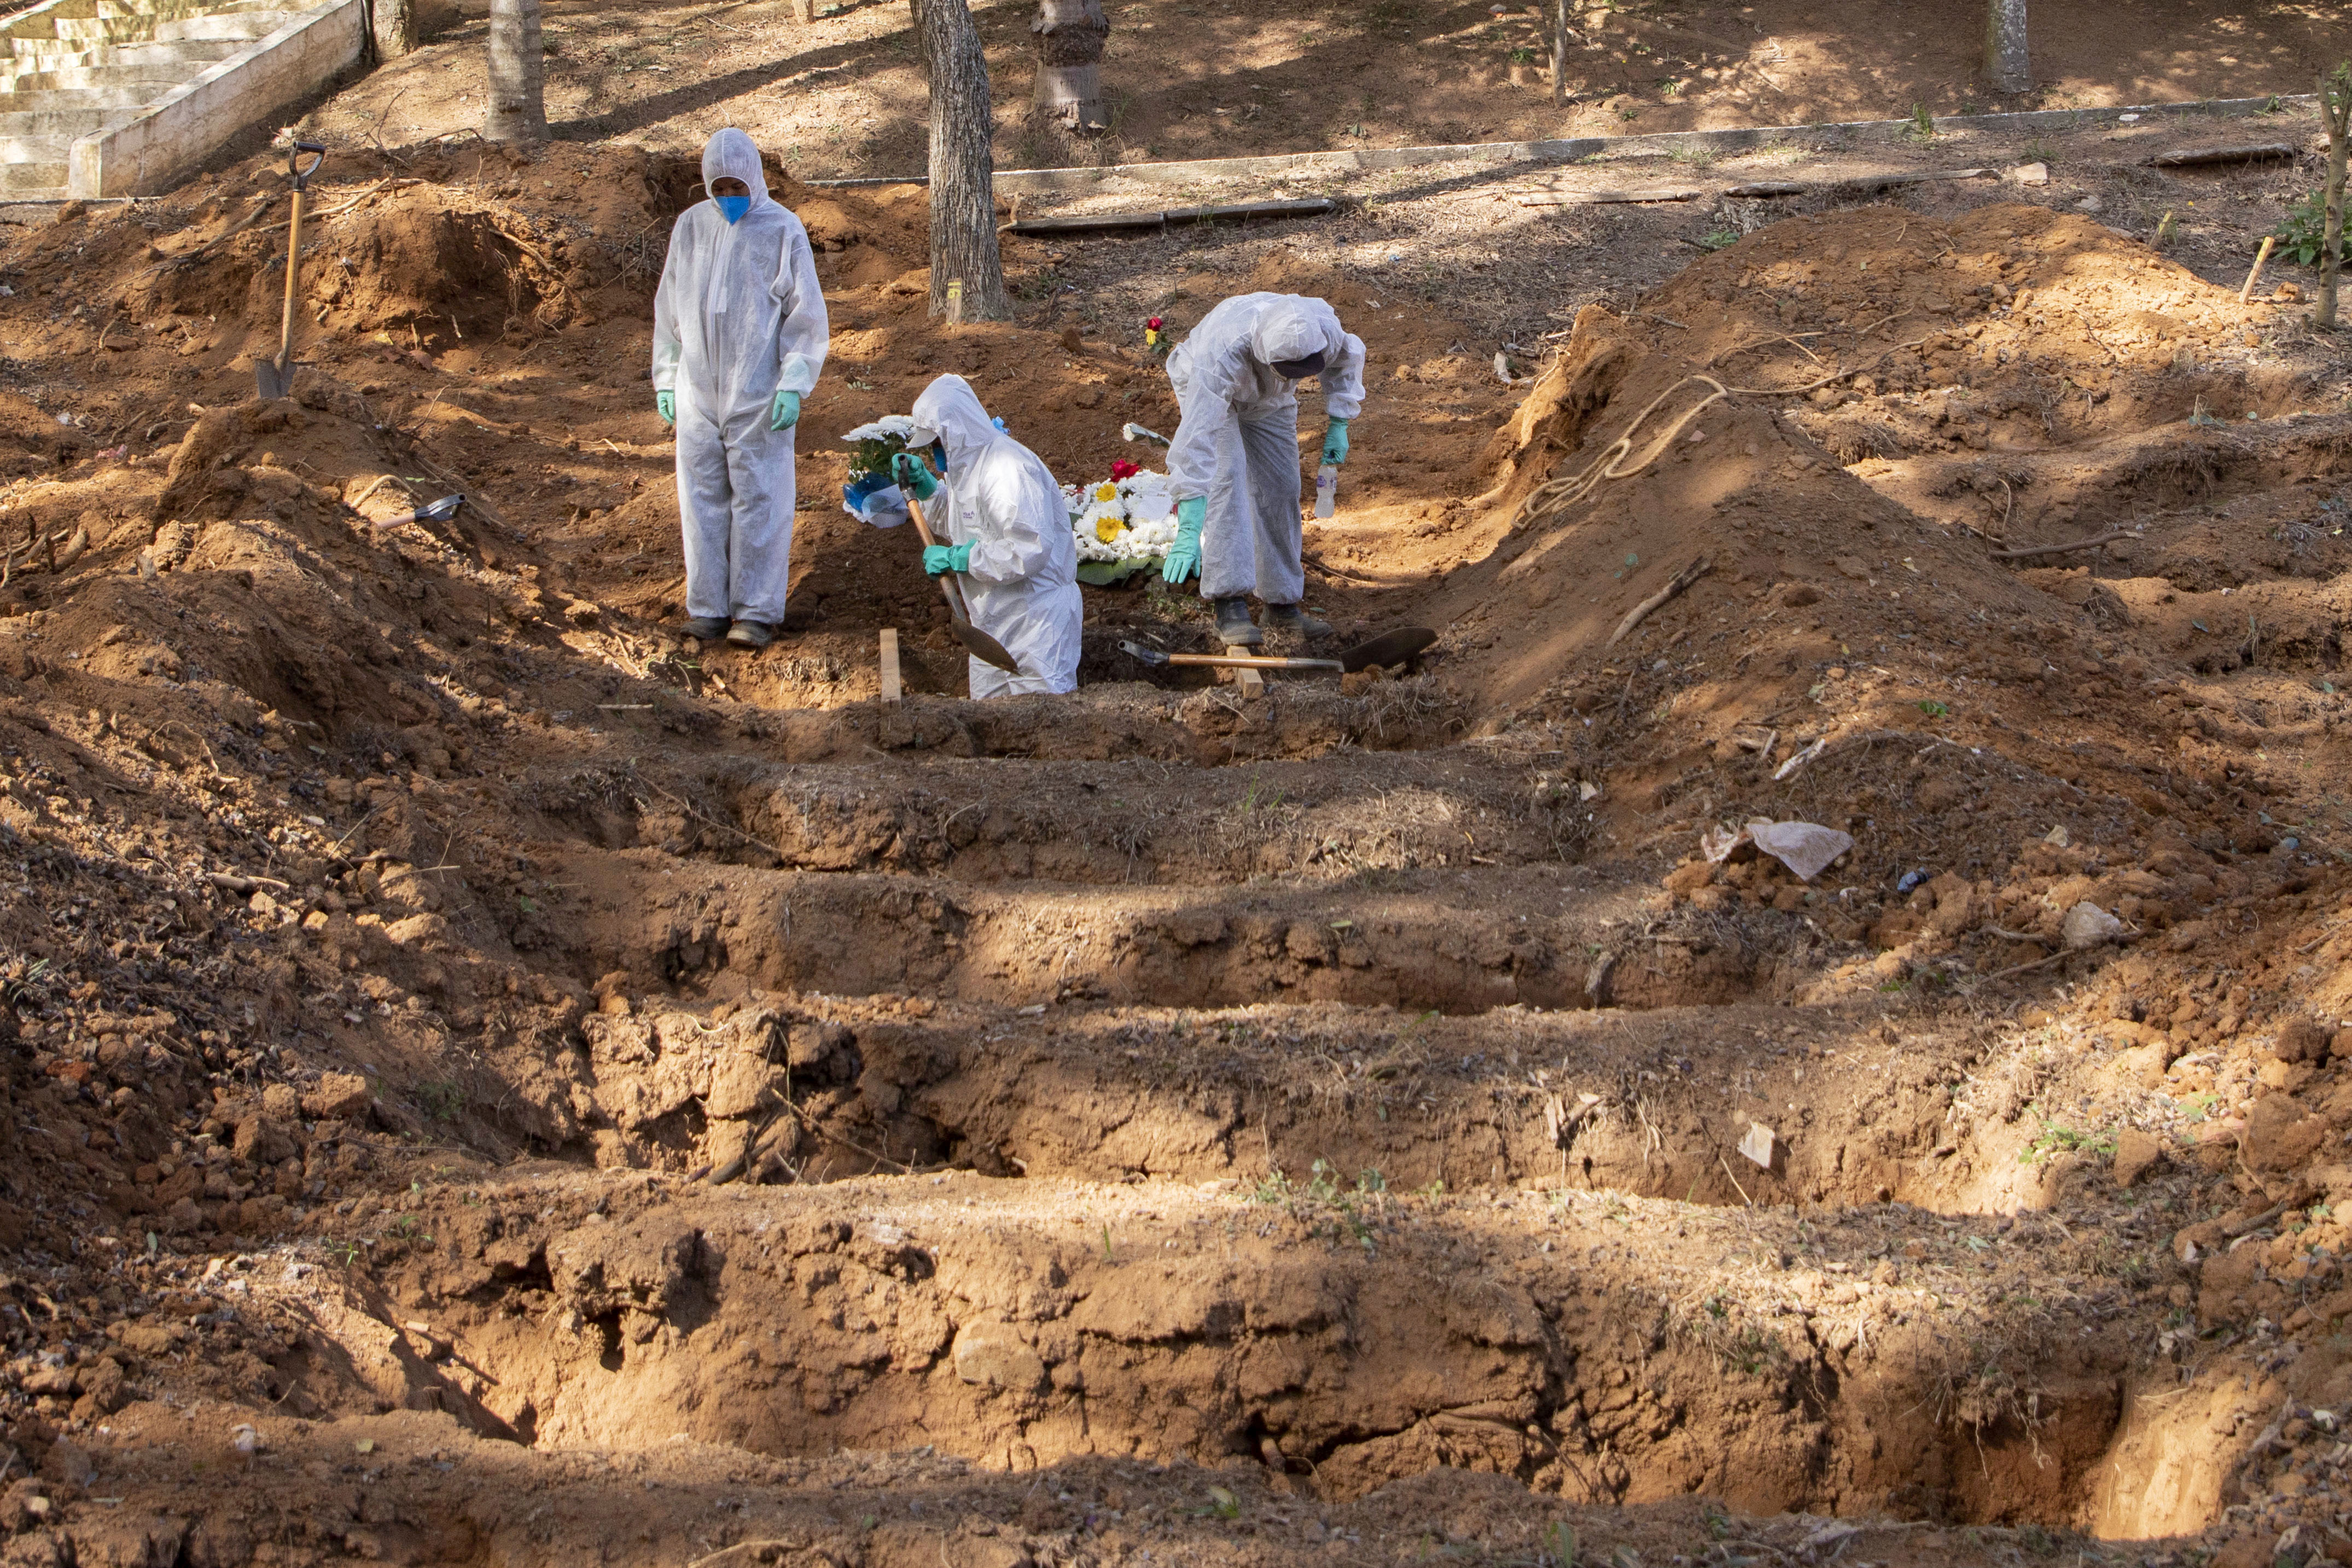 Gravediggers work to bury a person said to have died from Covid-19 at a cemetery in São Paulo, Brazil, on June 23.